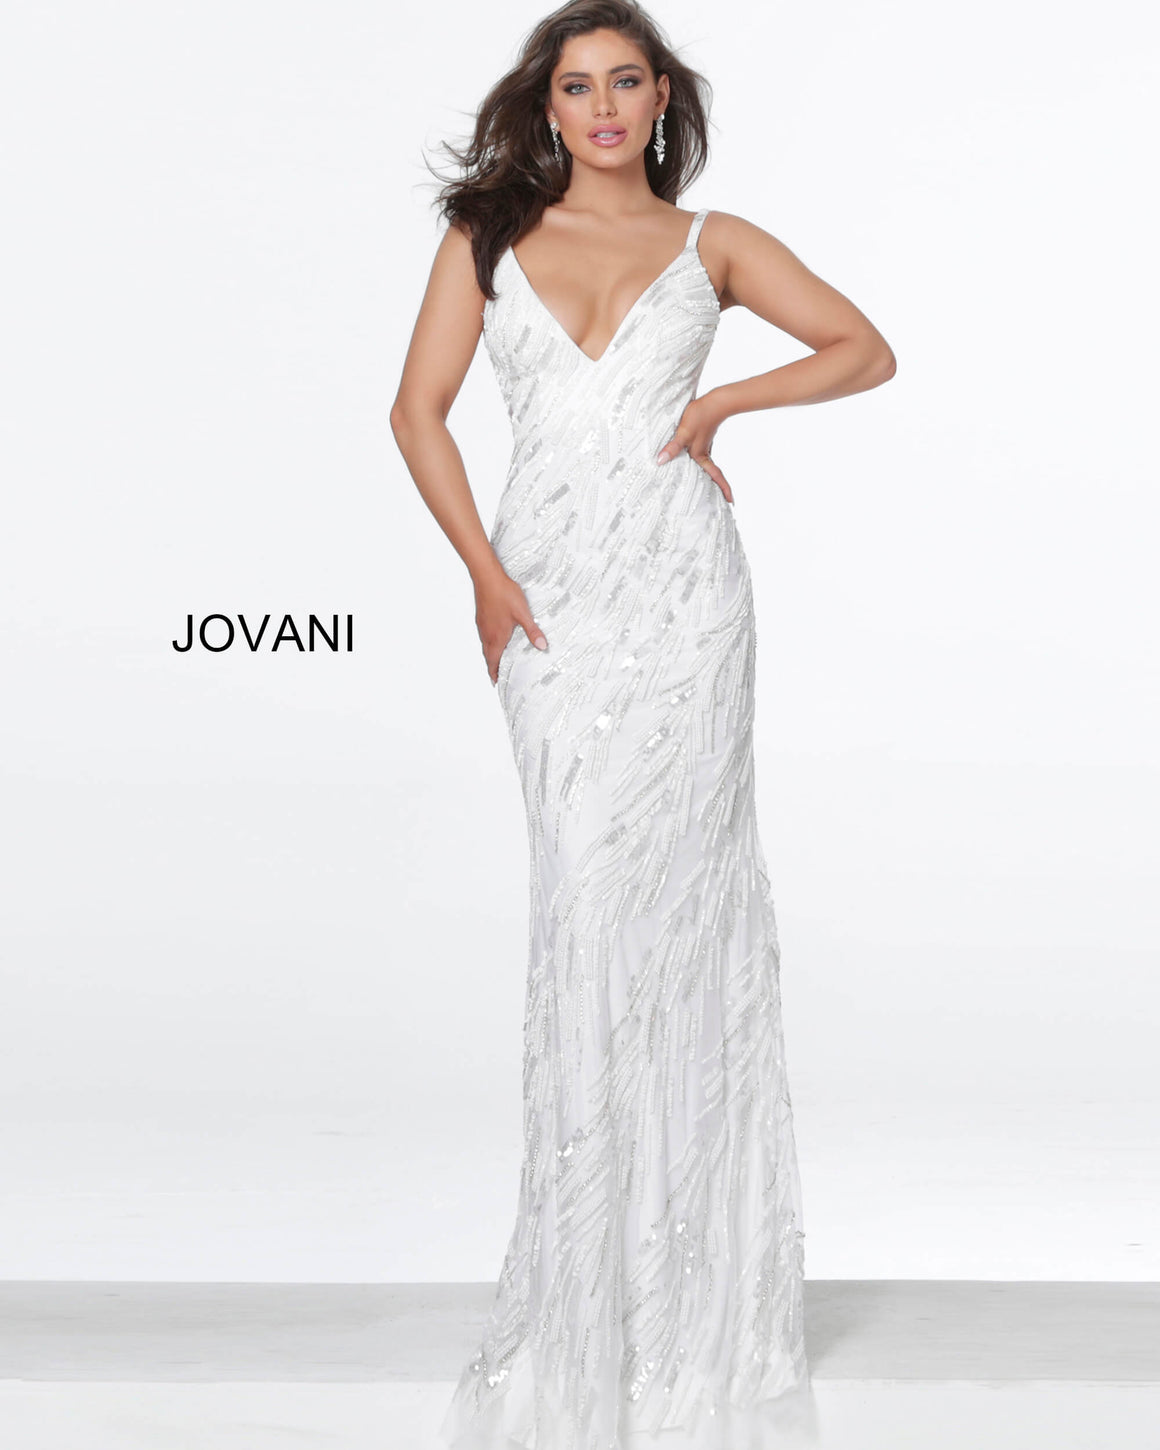 Jovani 03398 White Low Back Embellished Evening Dress